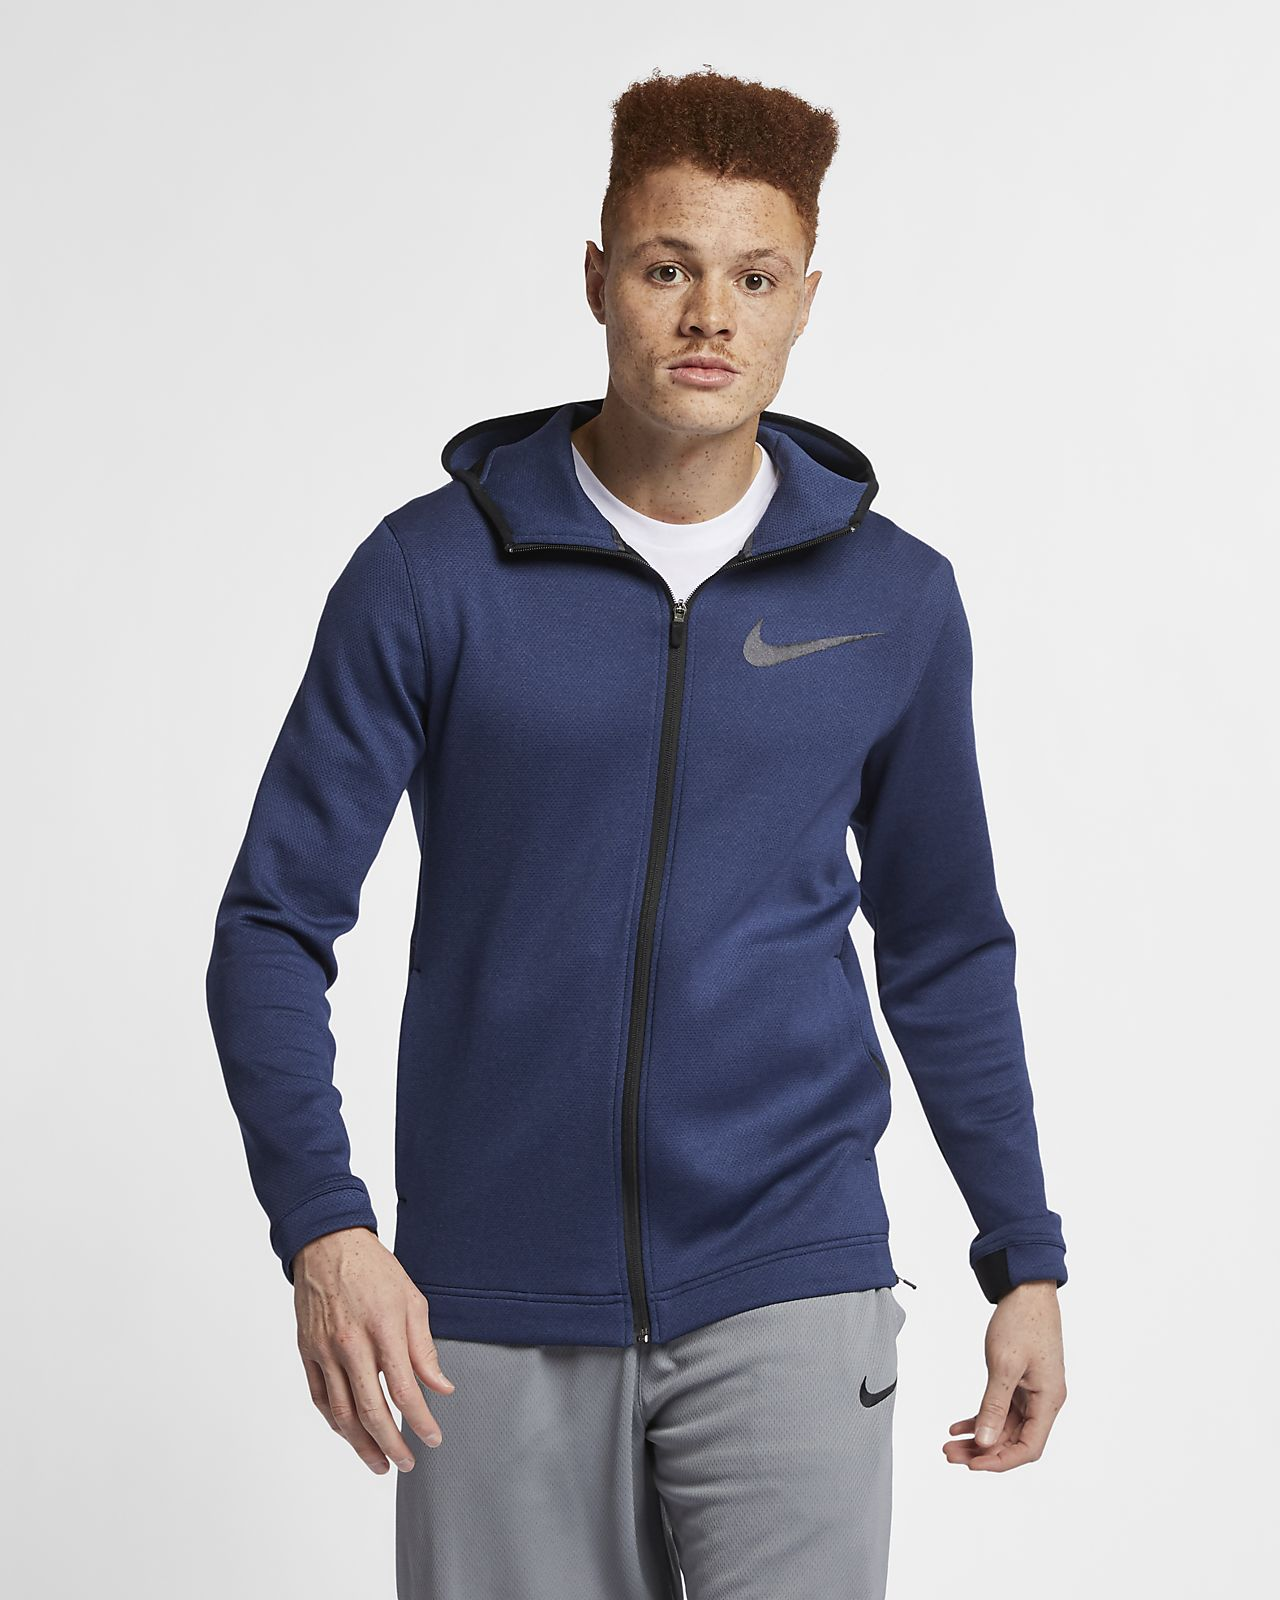 056dd03fc Nike Therma Flex Showtime Men's Full-Zip Basketball Hoodie. Nike.com GB